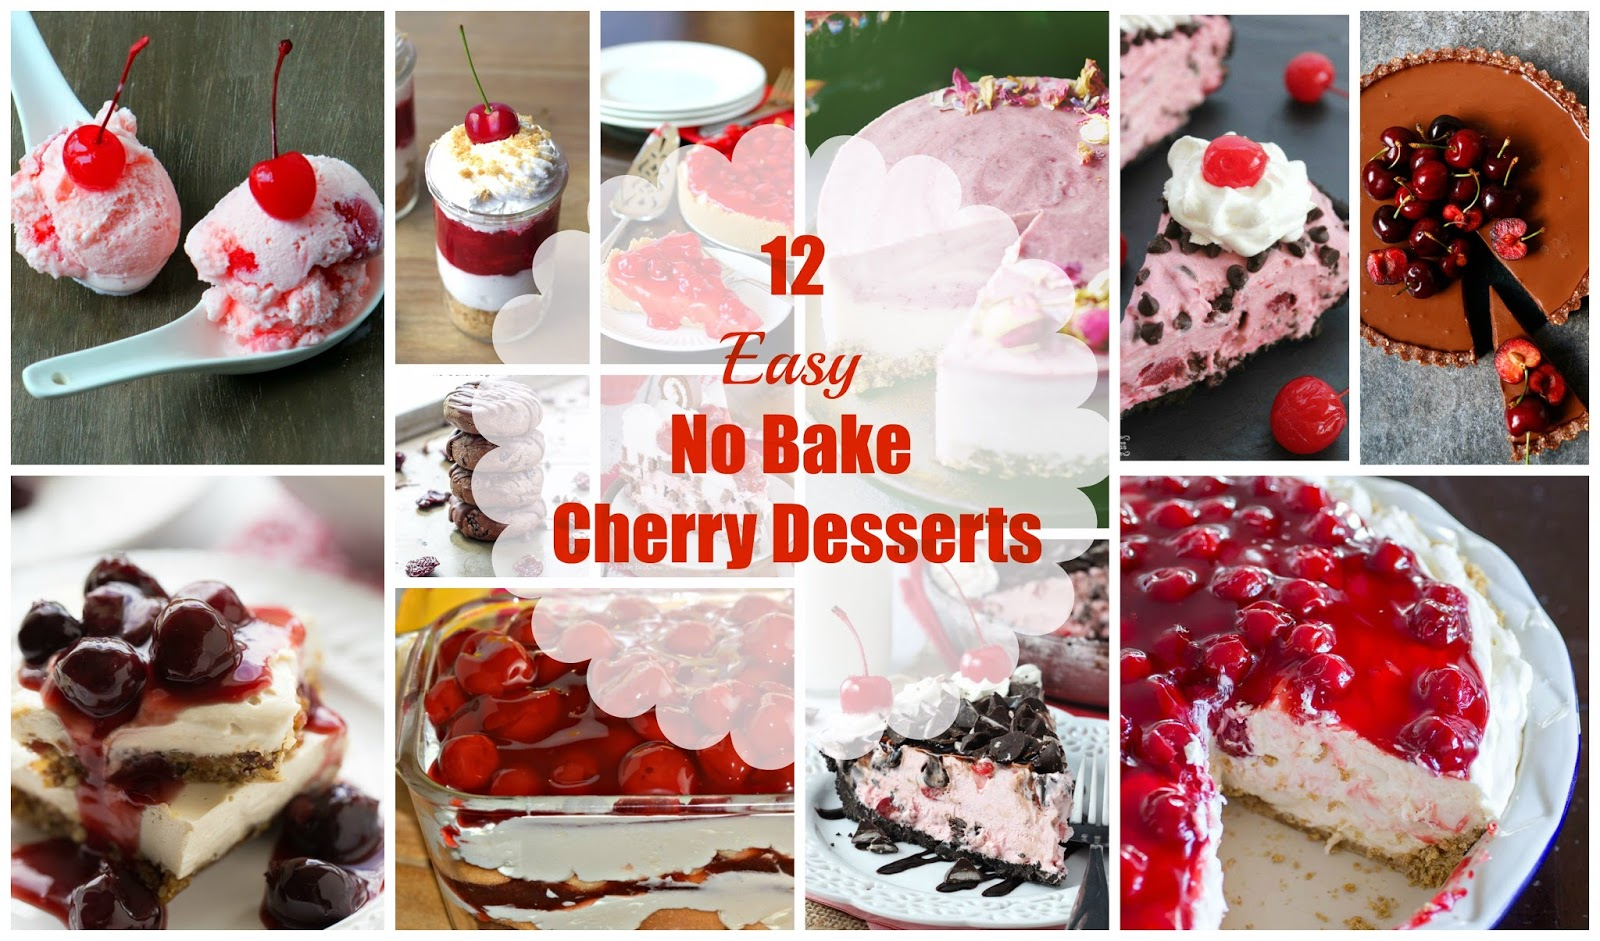 To celebrate Cherry season, here's a delicious collection of easy NO BAKE  Cherry desserts!